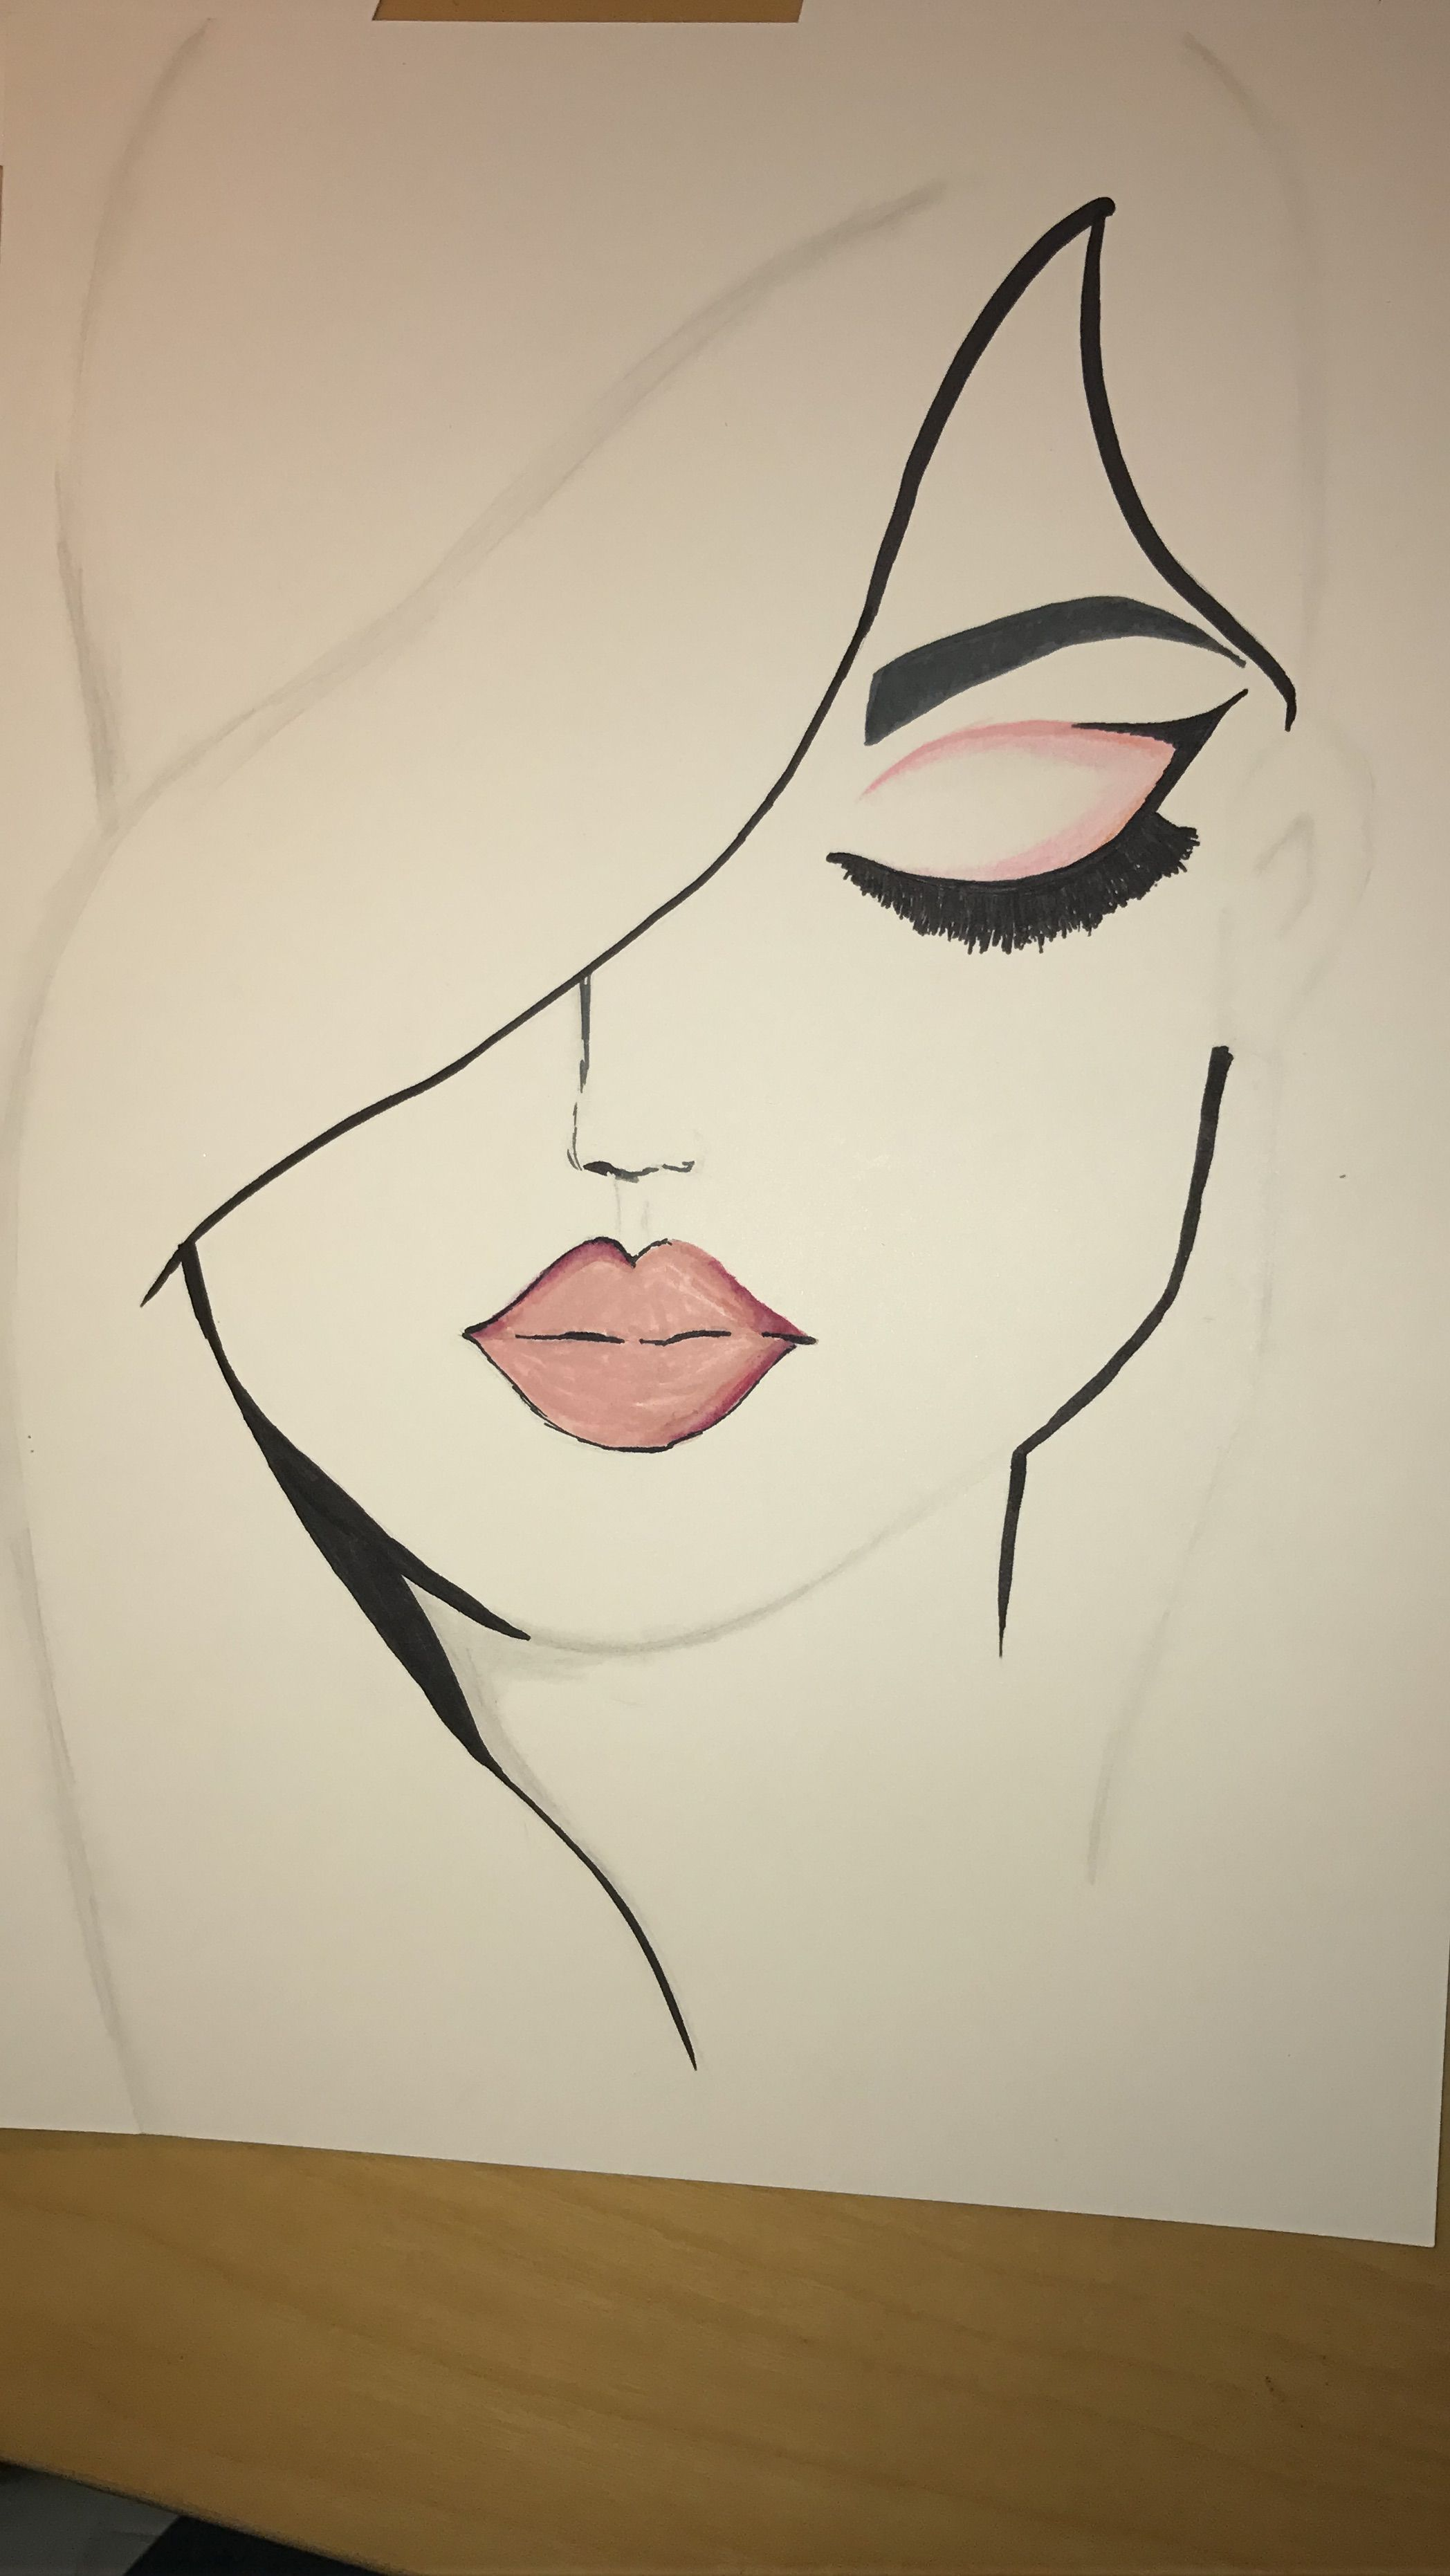 It was very easy to draw but the lips are easy to mess up on